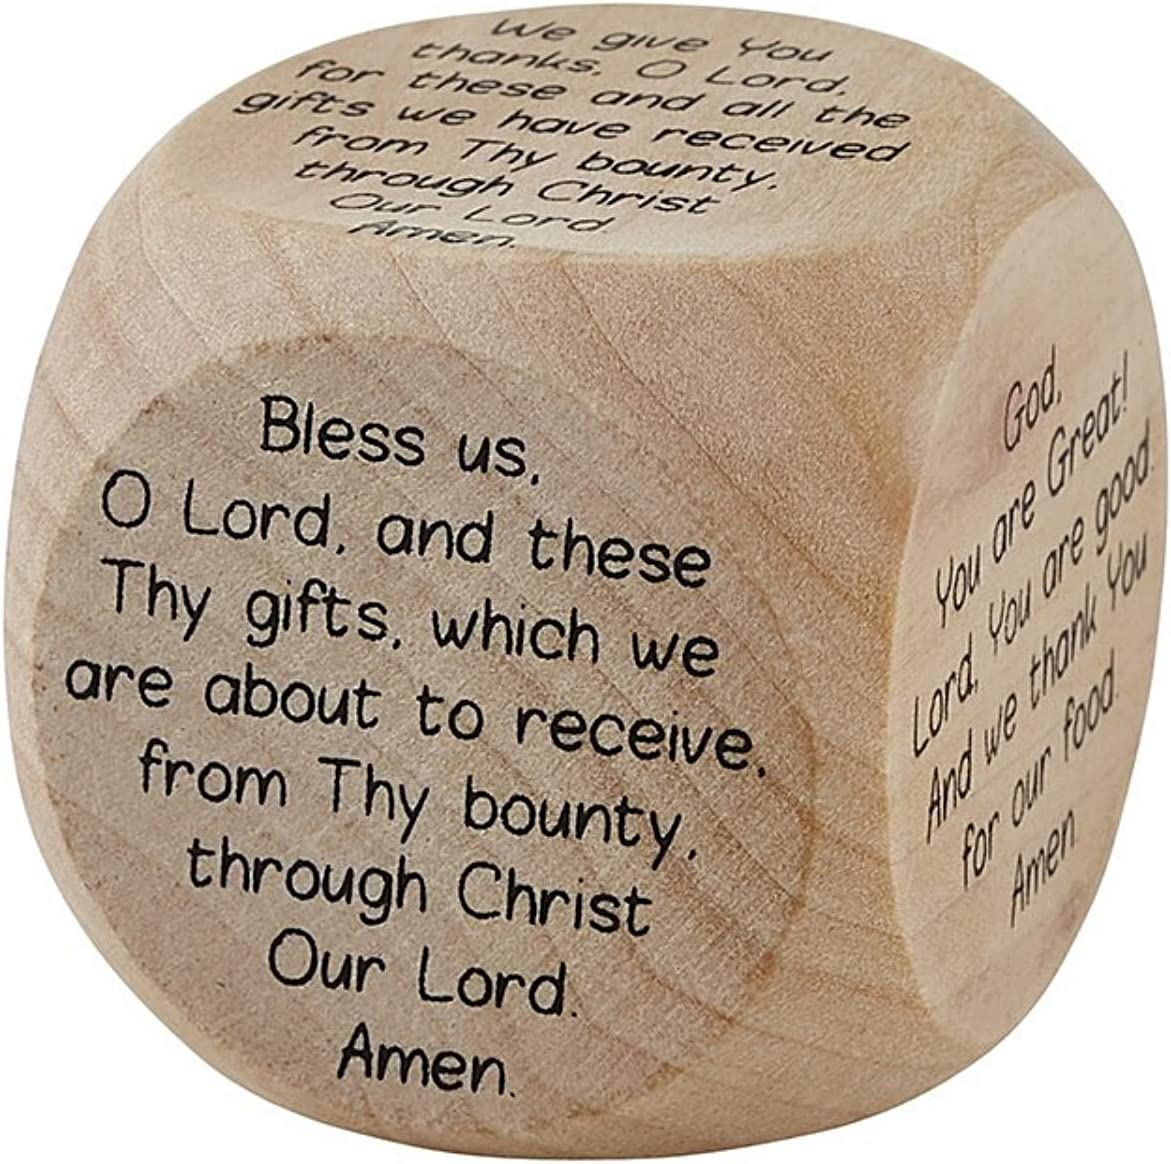 Children's Mealtime Prayer Cube for Learning with Family to Pray, Small Wooden Die Includes 6 Different Prayers, 1 5/8 Inches